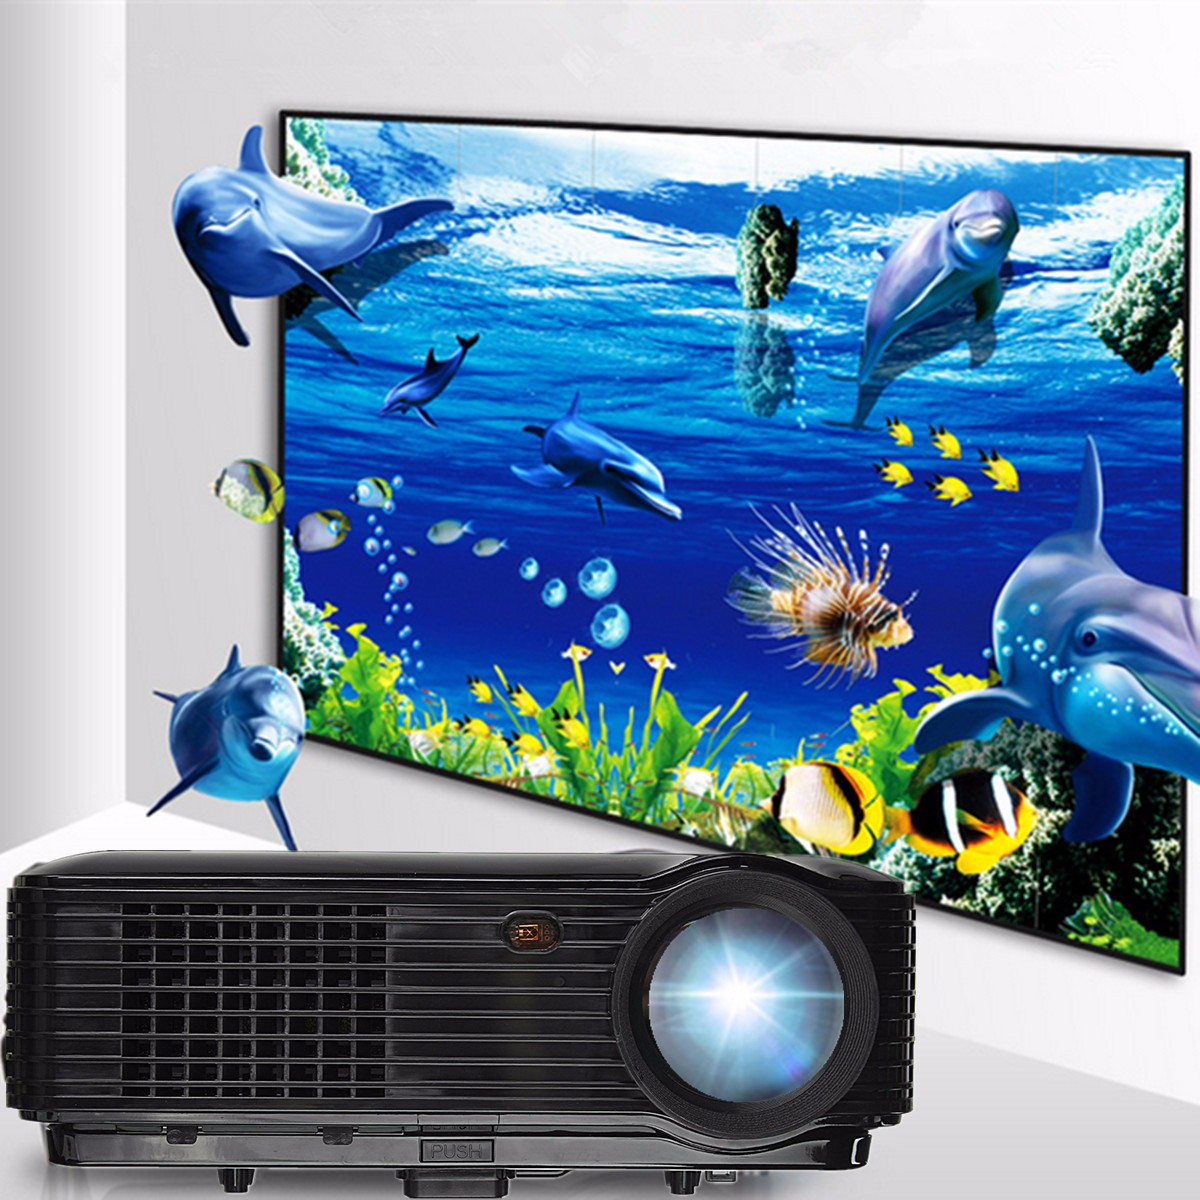 ELEGIANT 3500Lm LED Portable Projector 800x480 Resolution Home Theater Support 1080P USB VGA SD AV